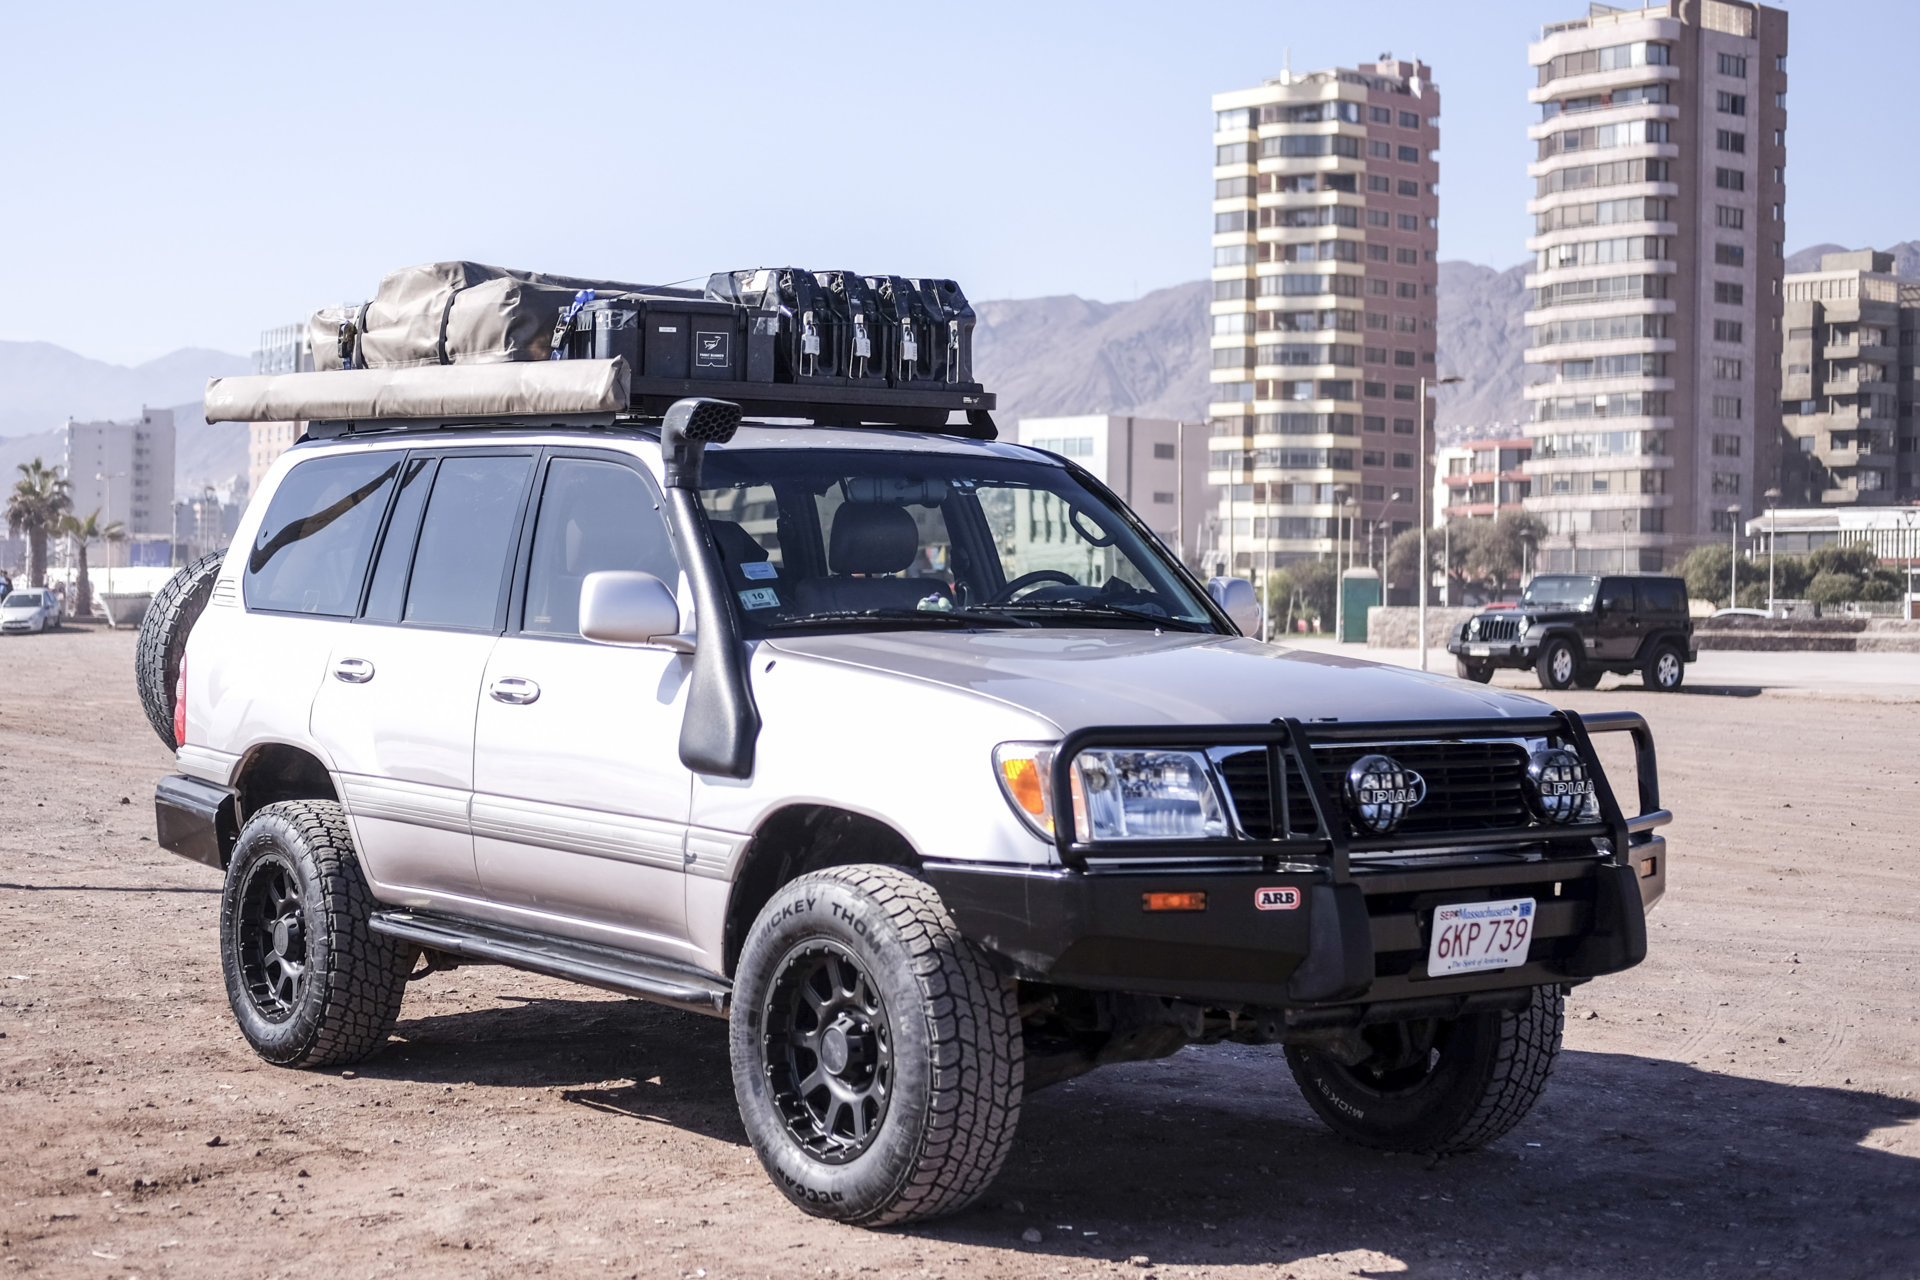 For Sale - 1999 Toyota Land Cruiser For Sale - Fully ...